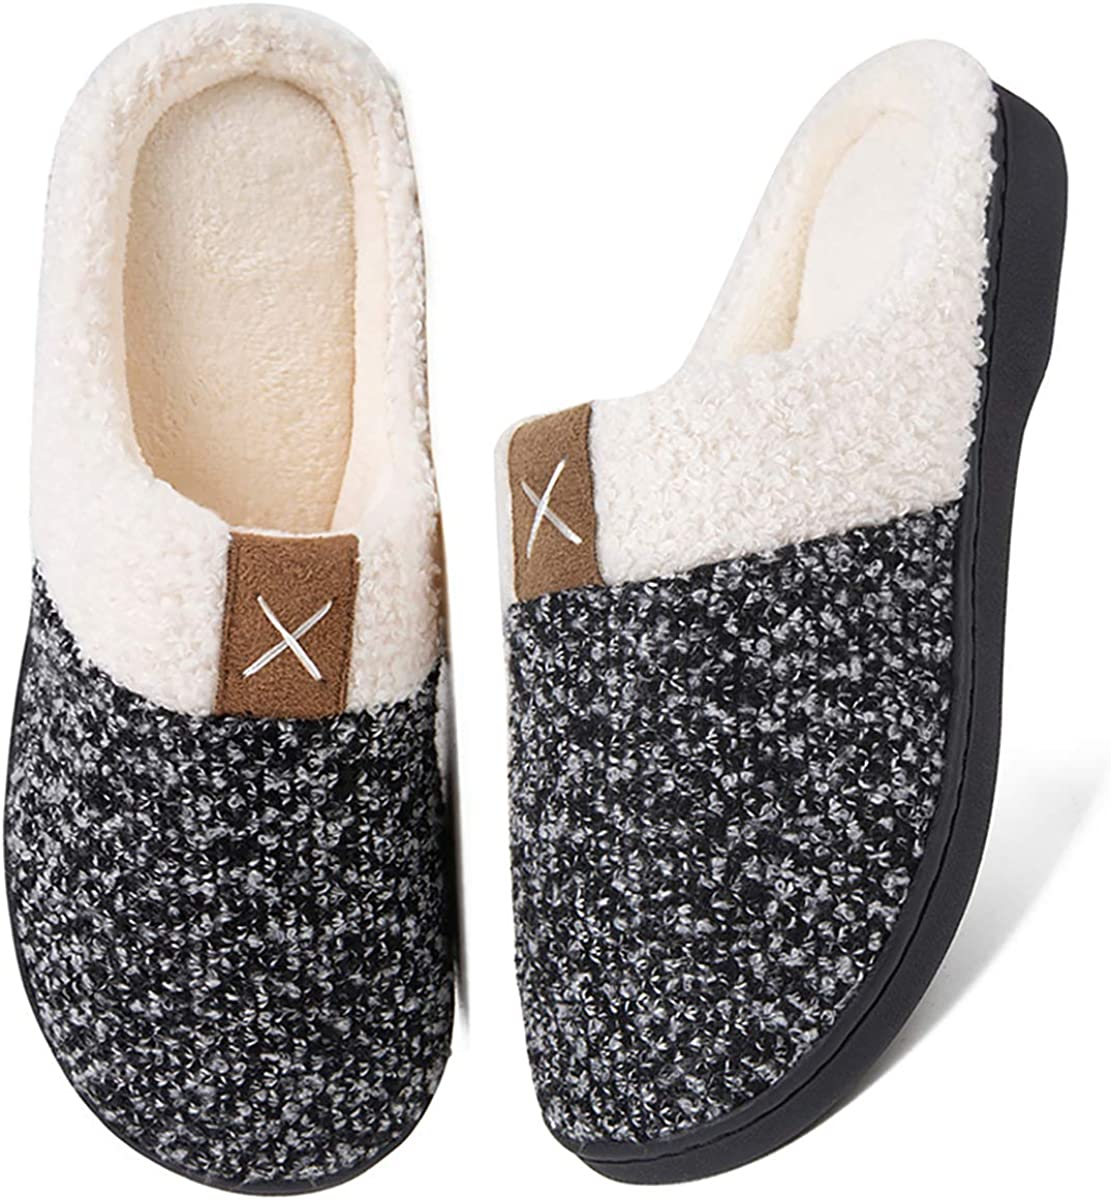 Women's Memory Foam House Slippers Comfort Wool-Like Plush Fleece Lined House Shoes for Indoor & Outdoor